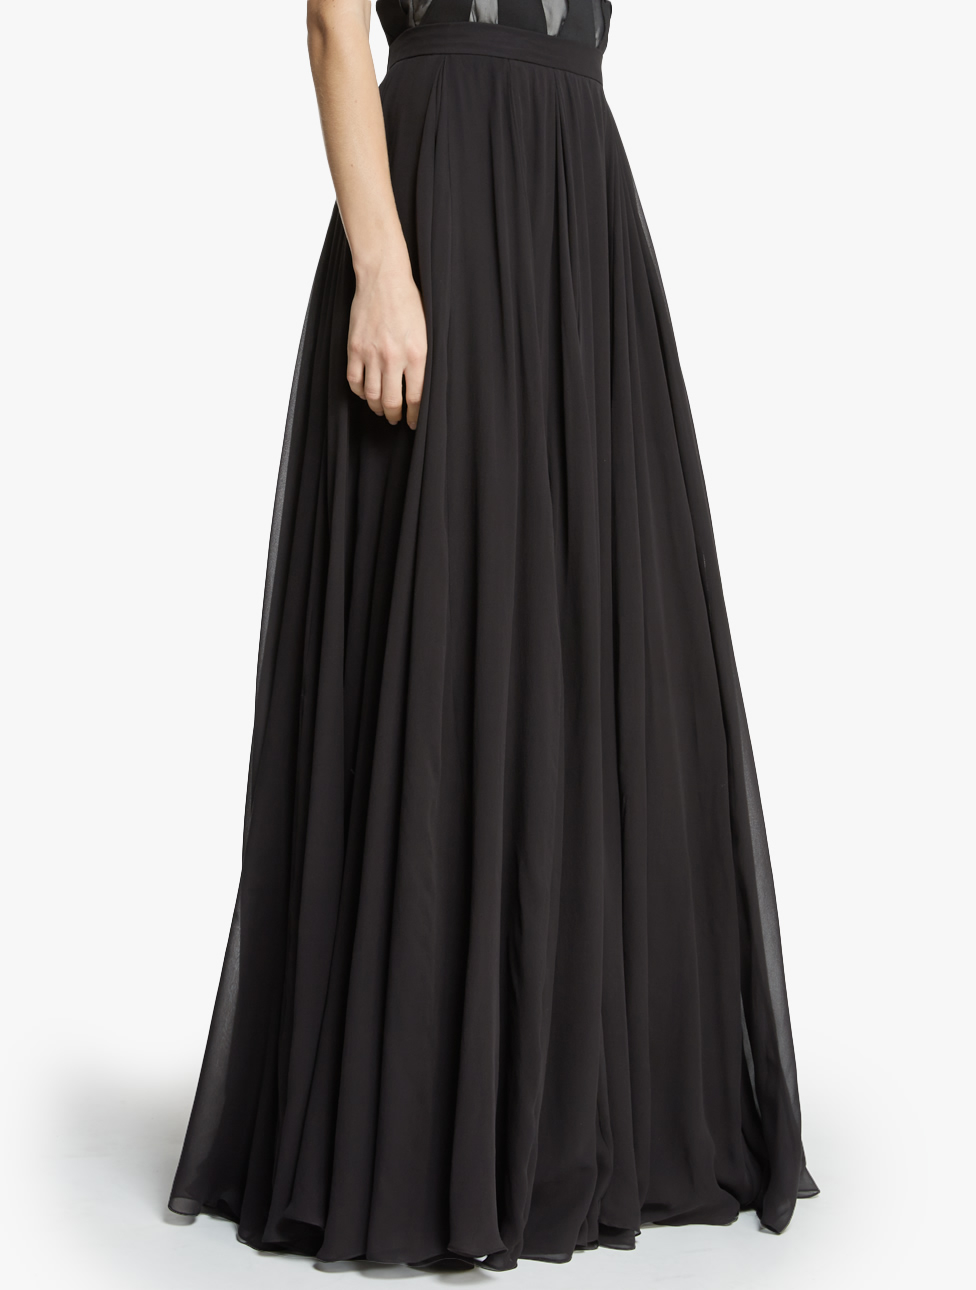 The basic black maxi skirt you've been looking for! Super comfortable with hidden pockets!